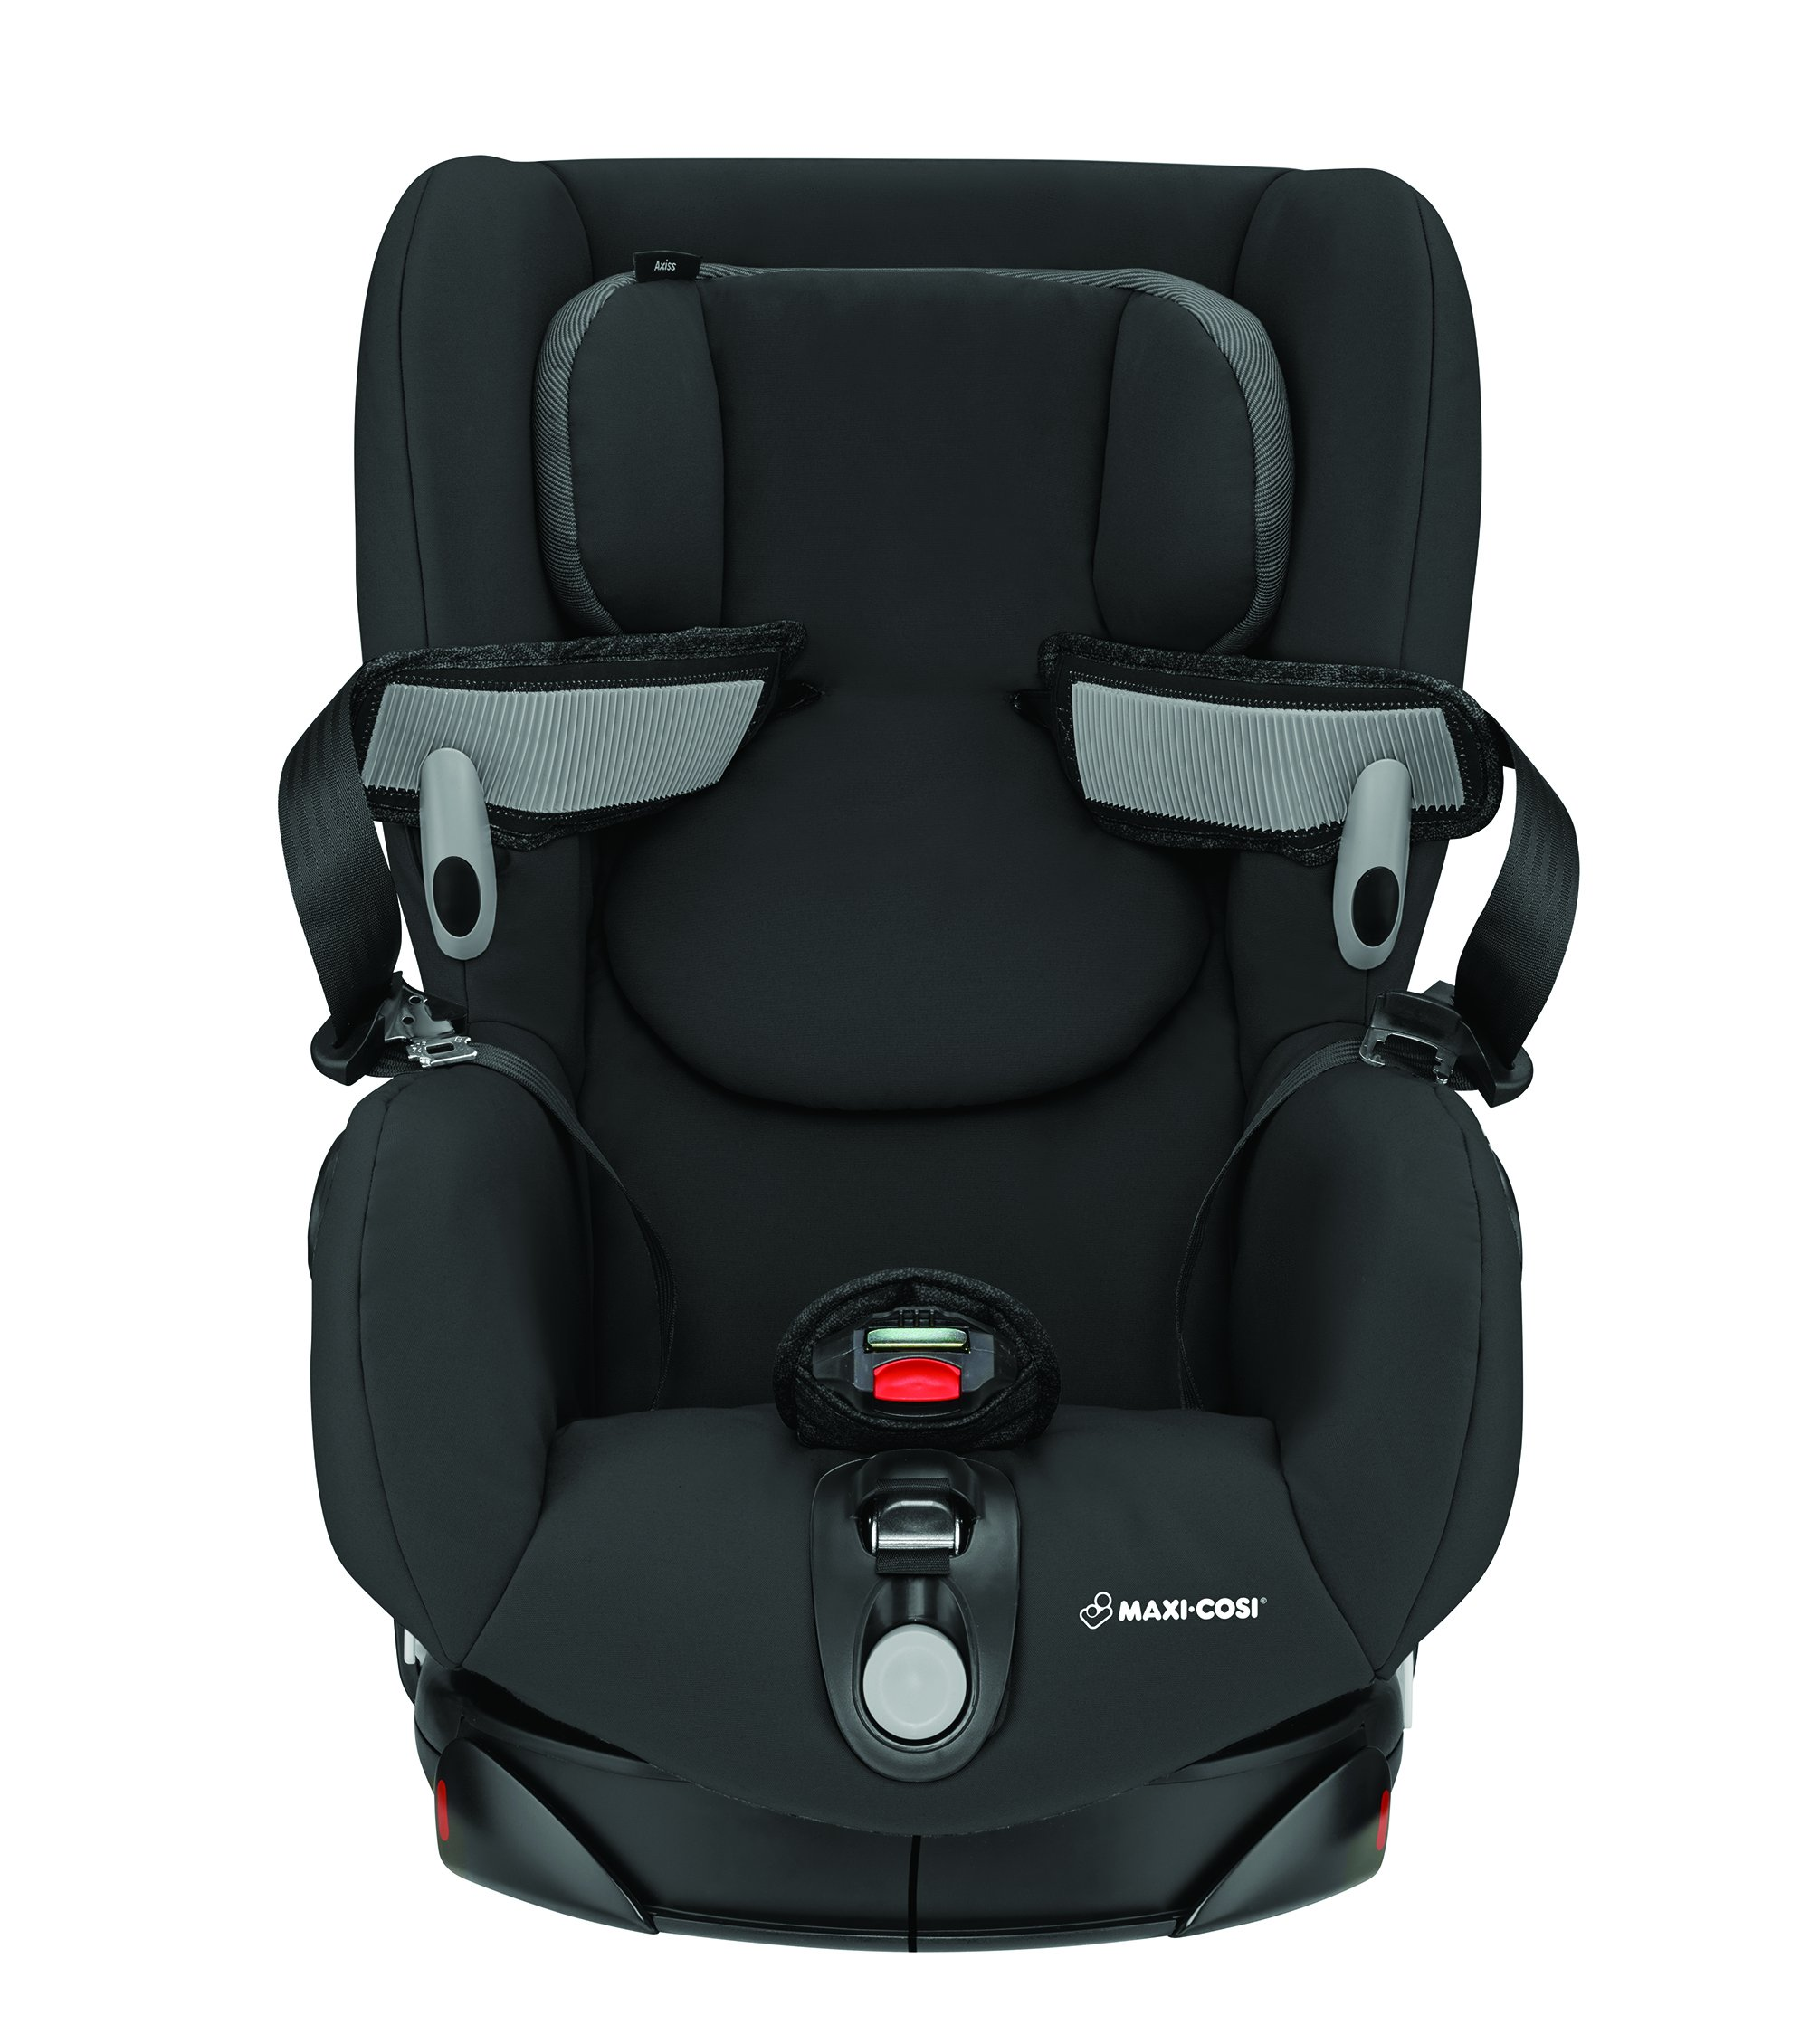 Maxi-Cosi Axiss Toddler Car Seat Group 1, Swivel Car Seat, 9 Months-4 Years, Nomad Black, 9-18 kg Maxi-Cosi Car seat swivels 90° degrees allows for front-on access to get your toddler in and out of the car more easily 8 comfortable recline positions. Machine washable cover at 30° Install using the car's seat belt and the integrated belt tensioner ensures a solid fit 3